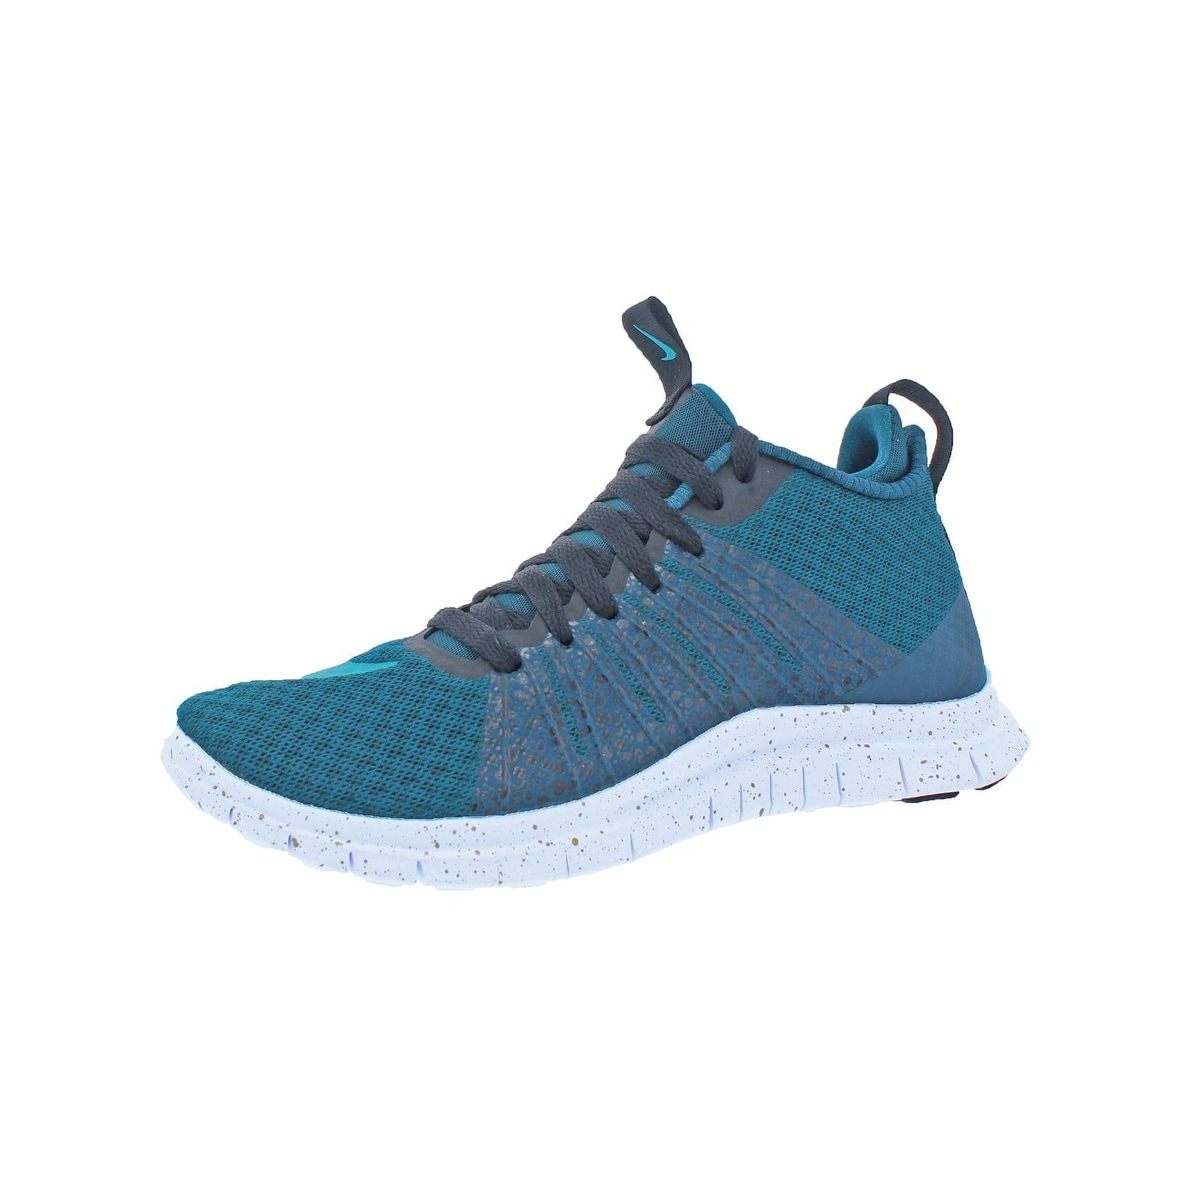 38dfeb5e693534 Shop Nike Mens Free Hypervenom 2 FC Soccer Shoes Colorblock Flexible - Free  Shipping Today - Overstock - 22358670